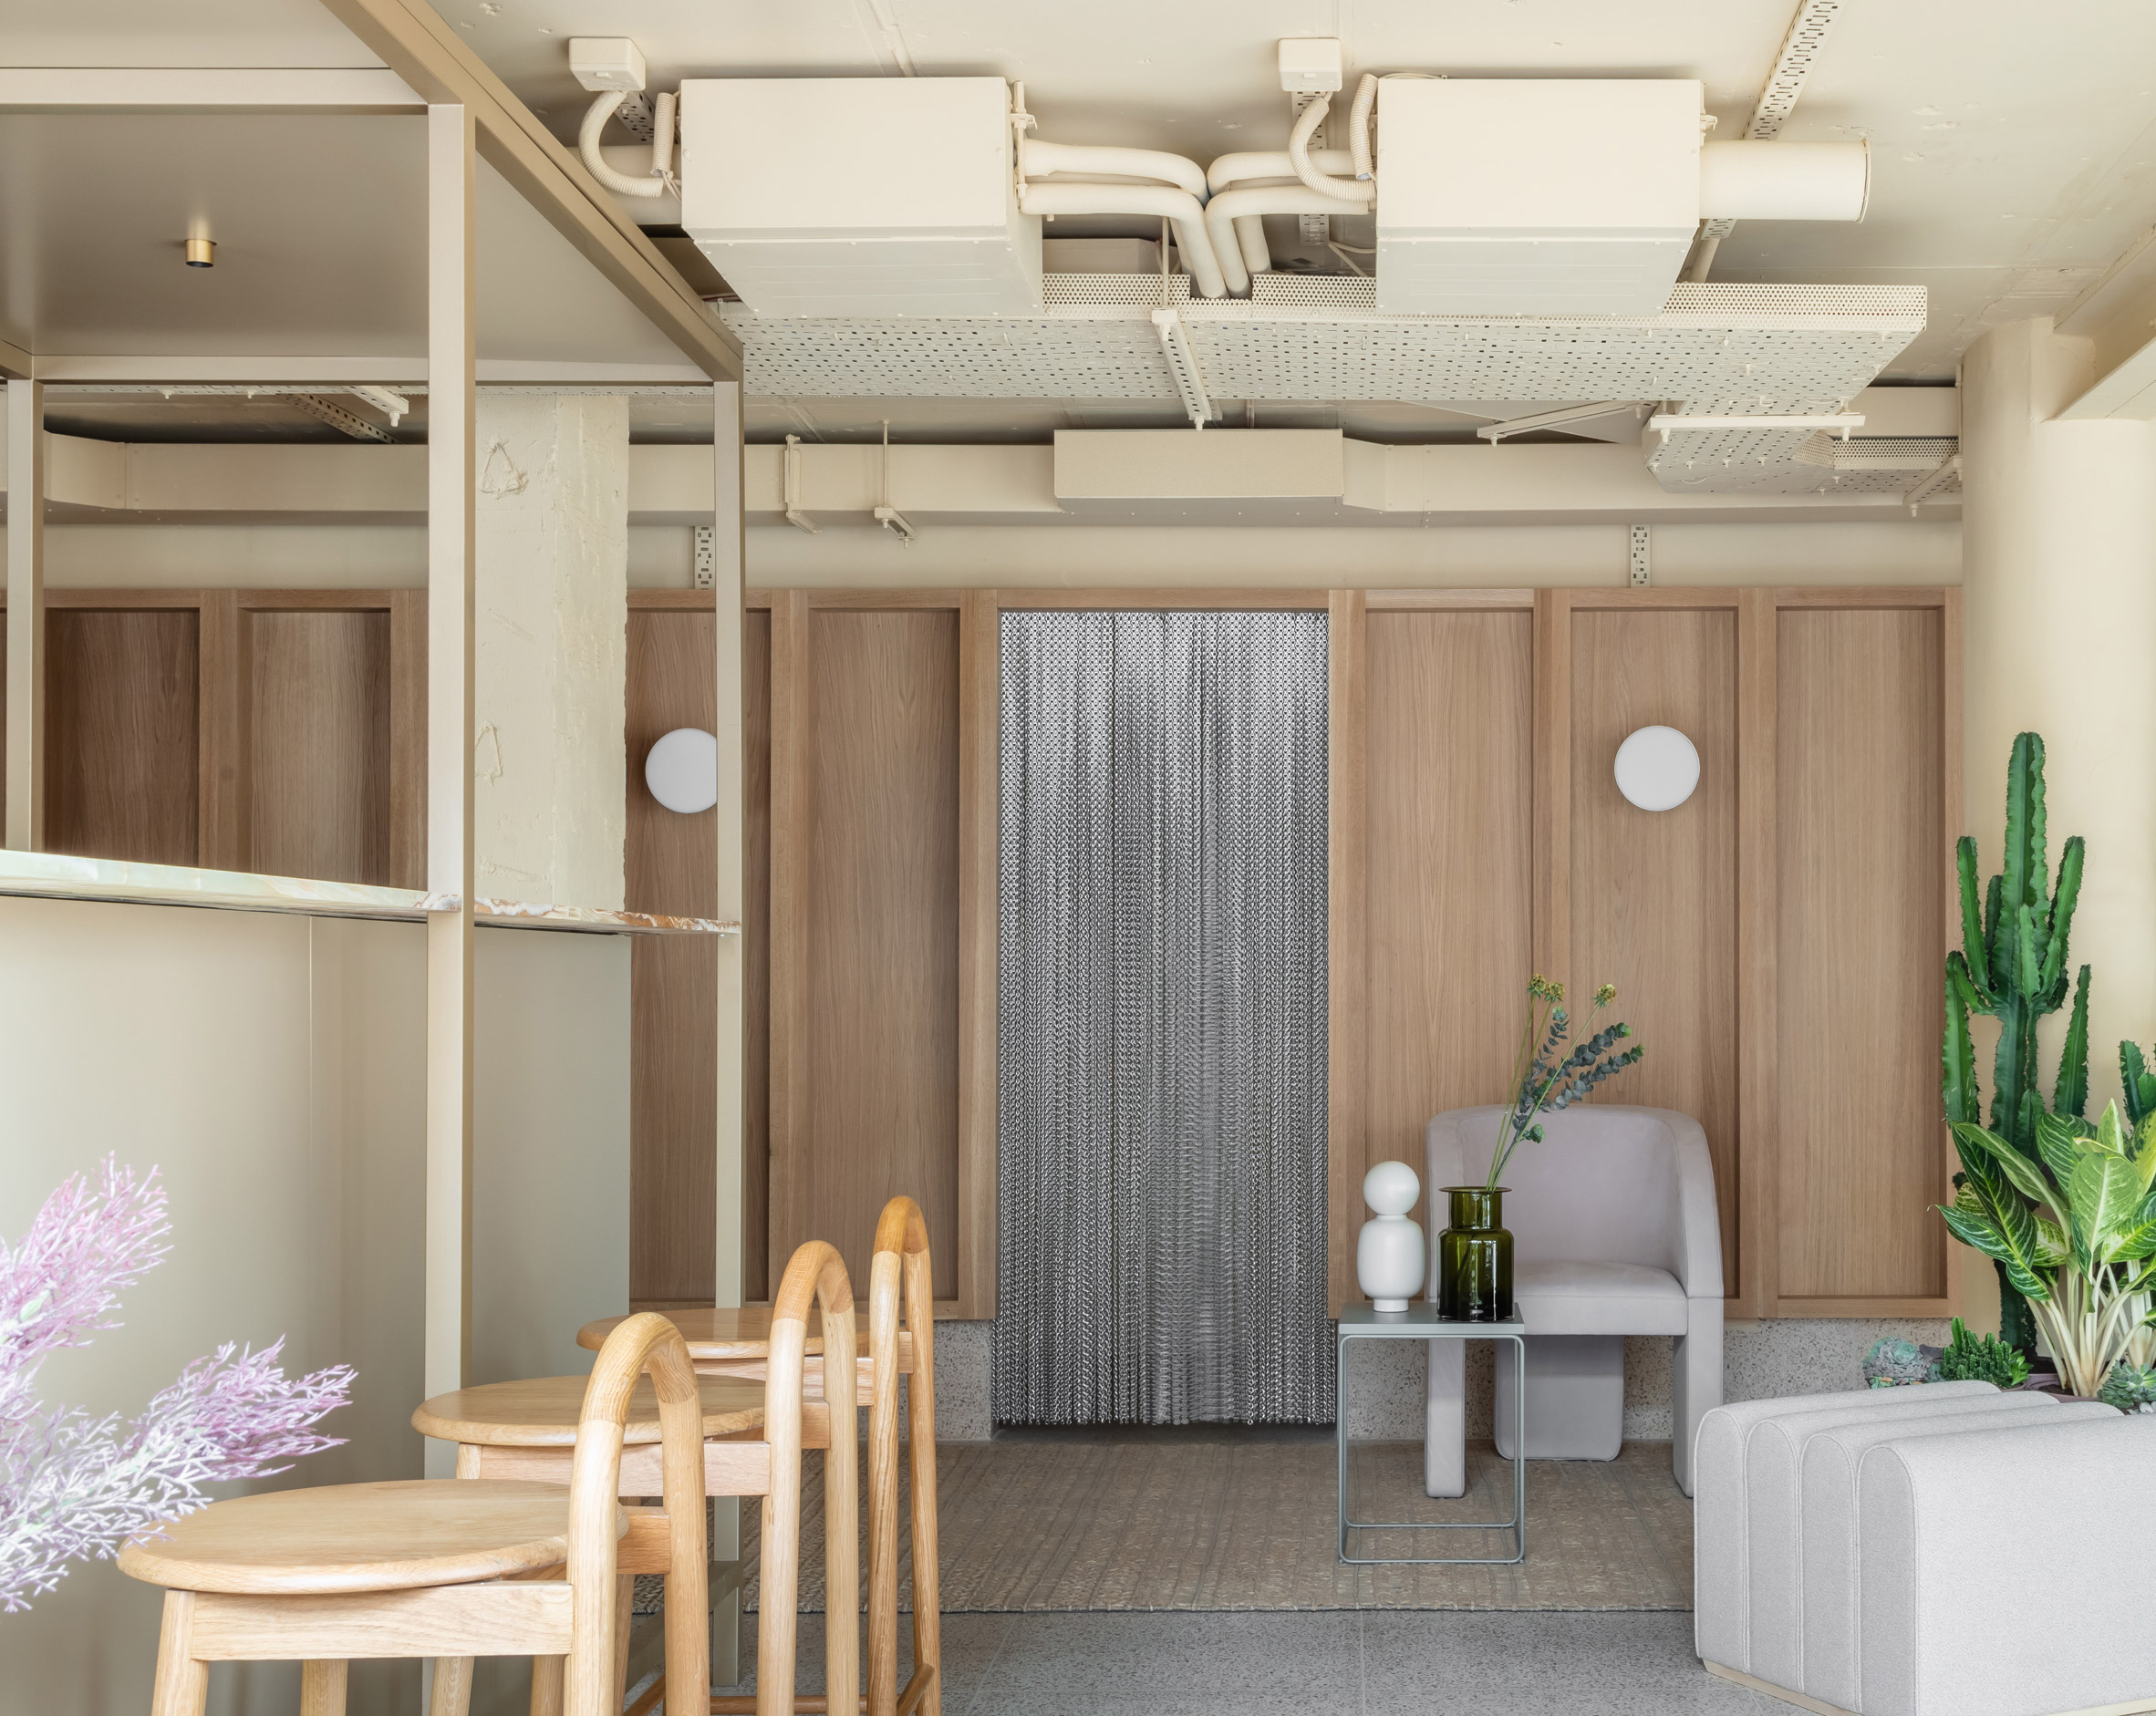 Locke at Broken Wharf hotel by Grzywinski+Pons